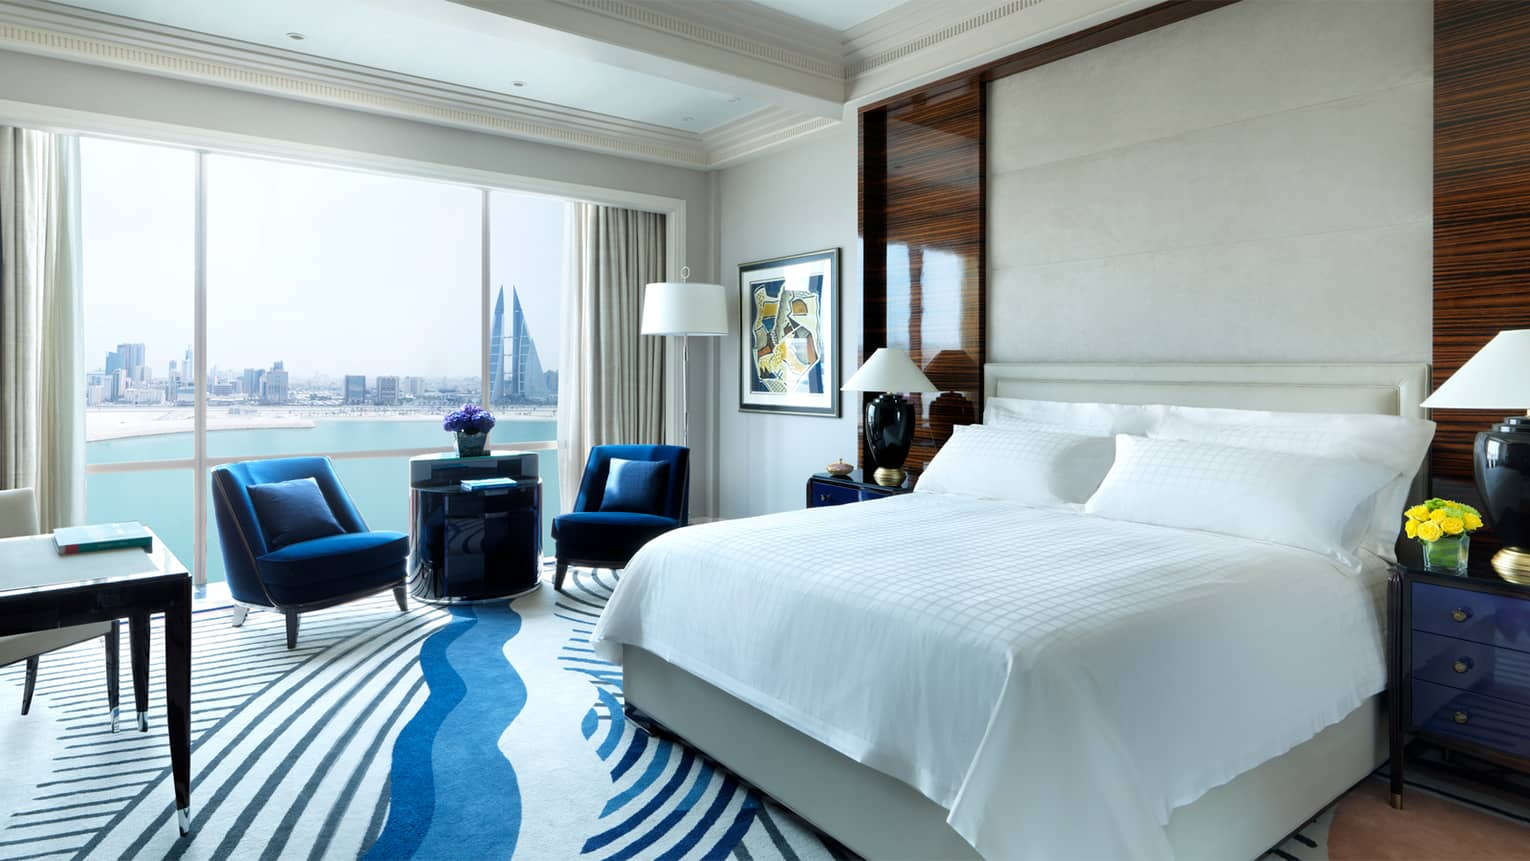 Deluxe Room bed, modern blue-and-white carpet, two blue armchairs in front of sunny windows